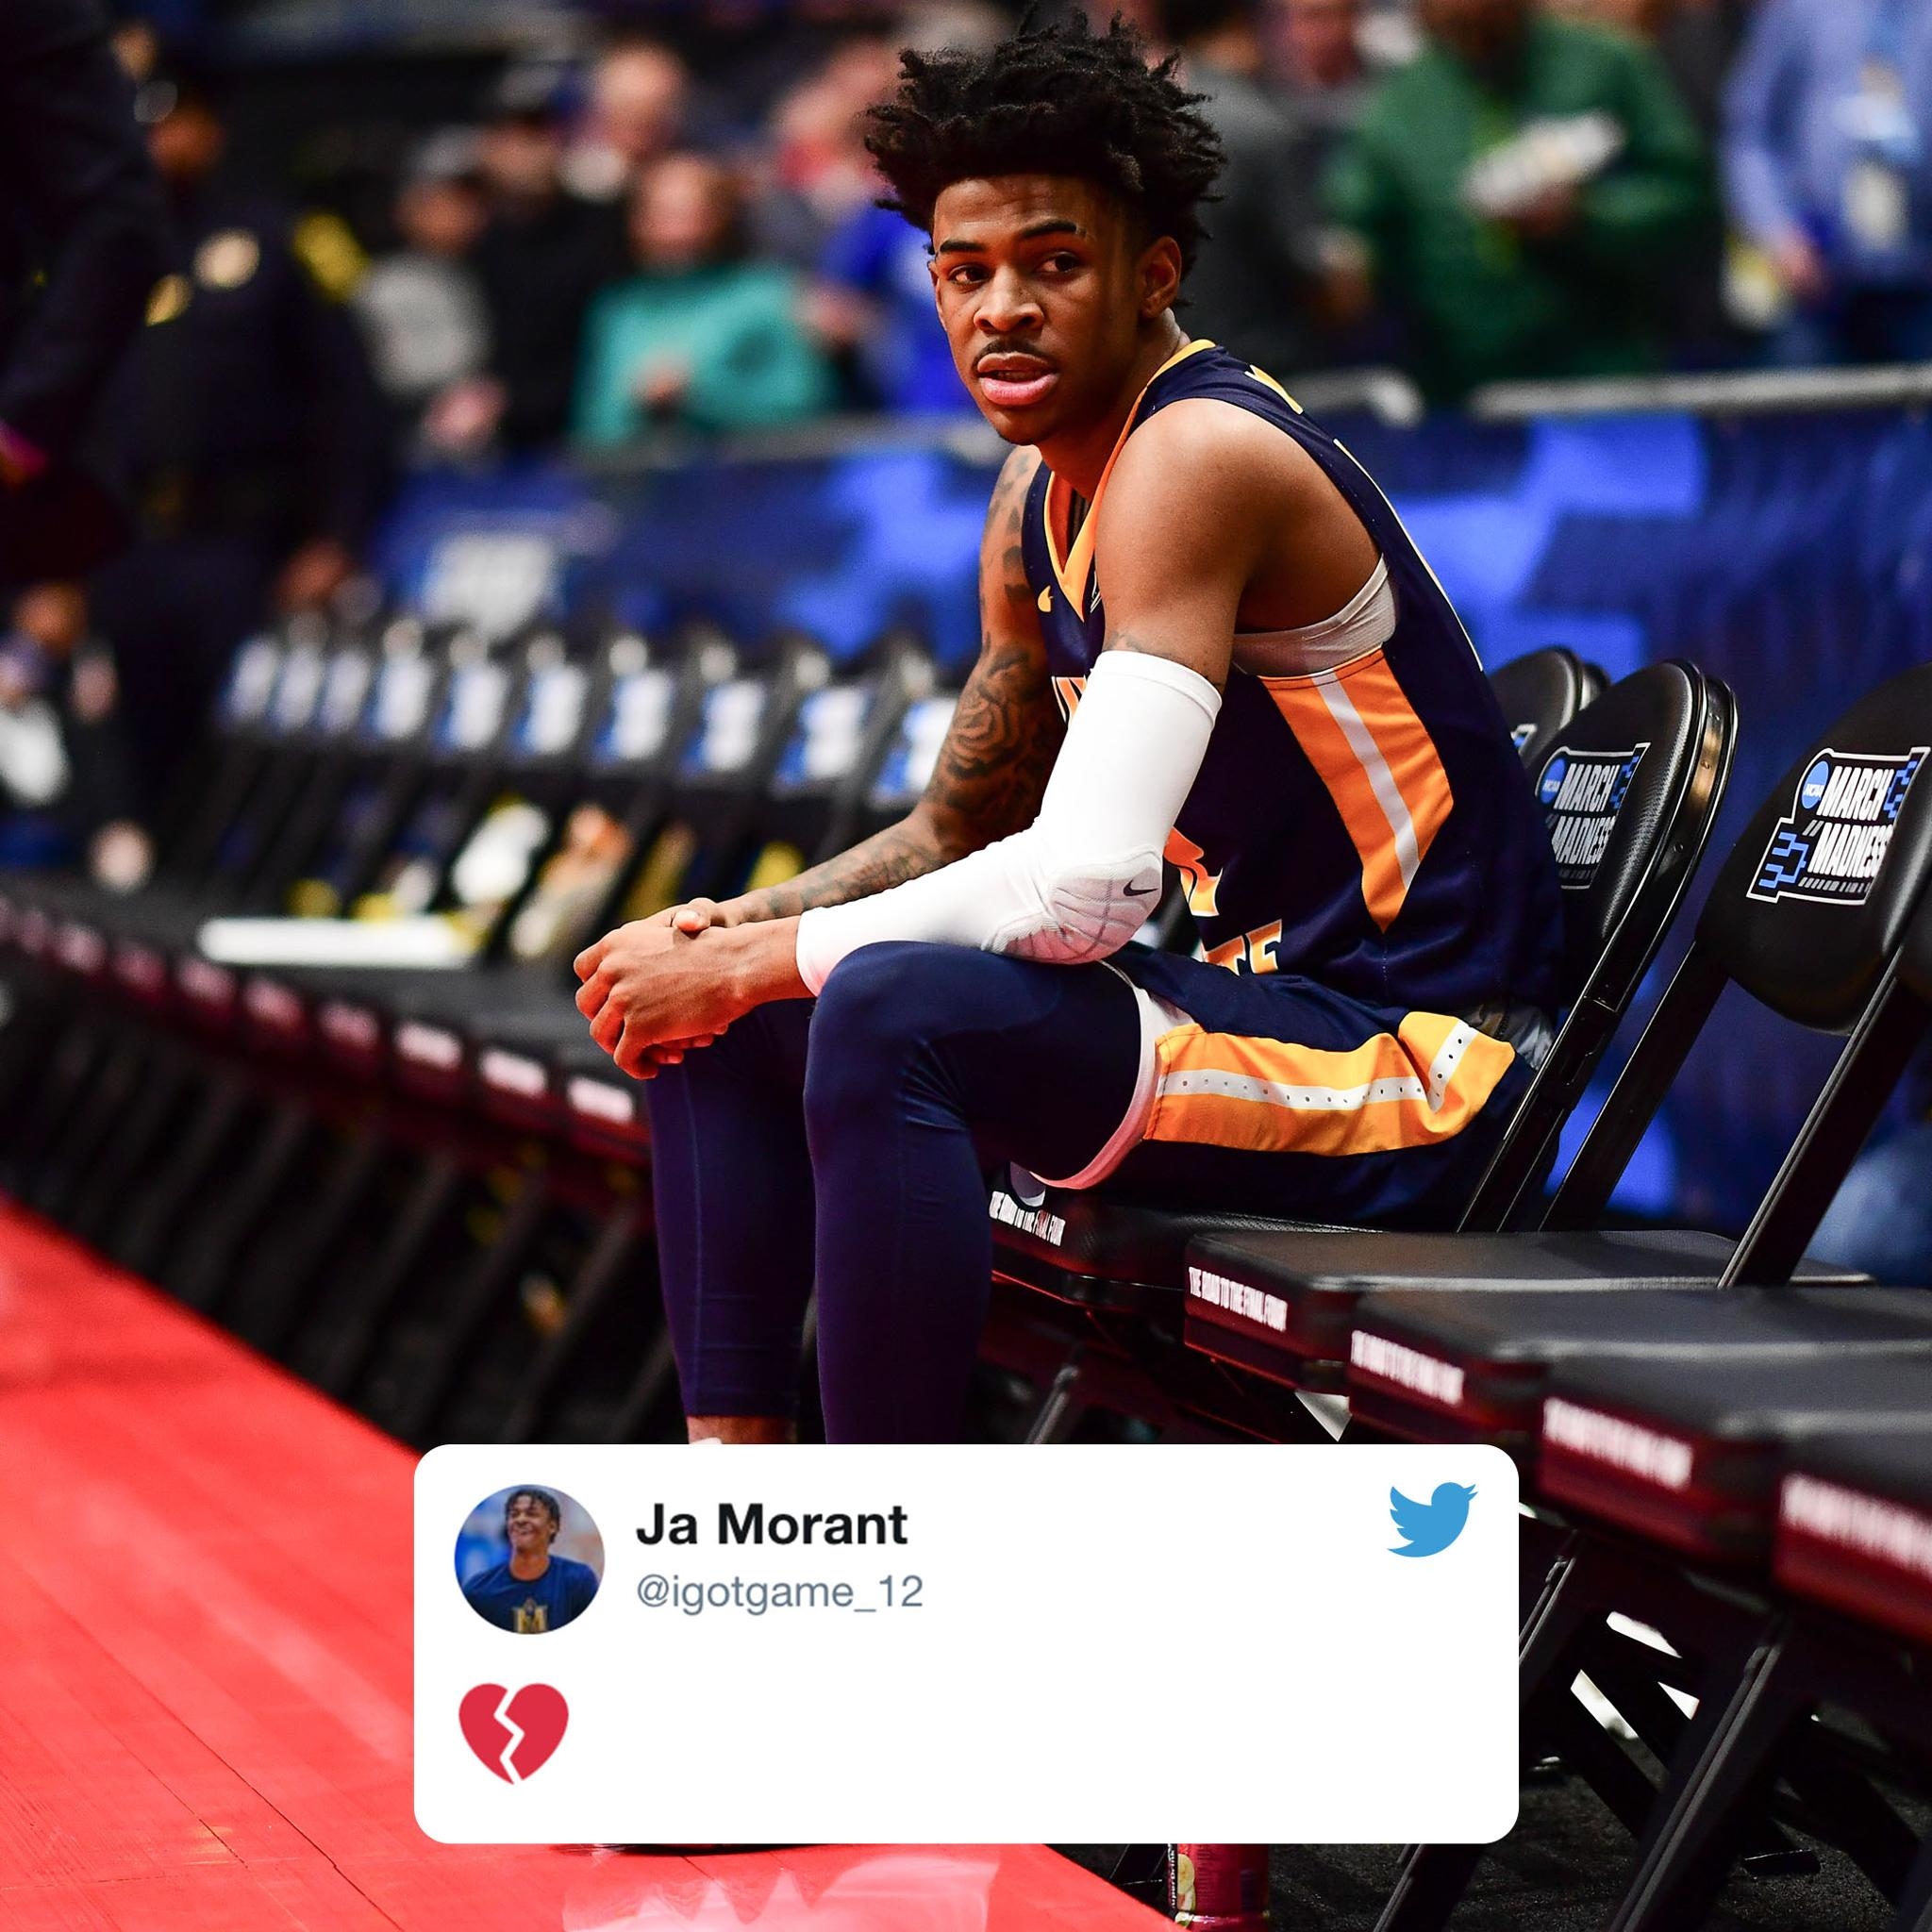 Tough ending for Ja Morant and Murray State. https://t.co/A4W4i1Qebh